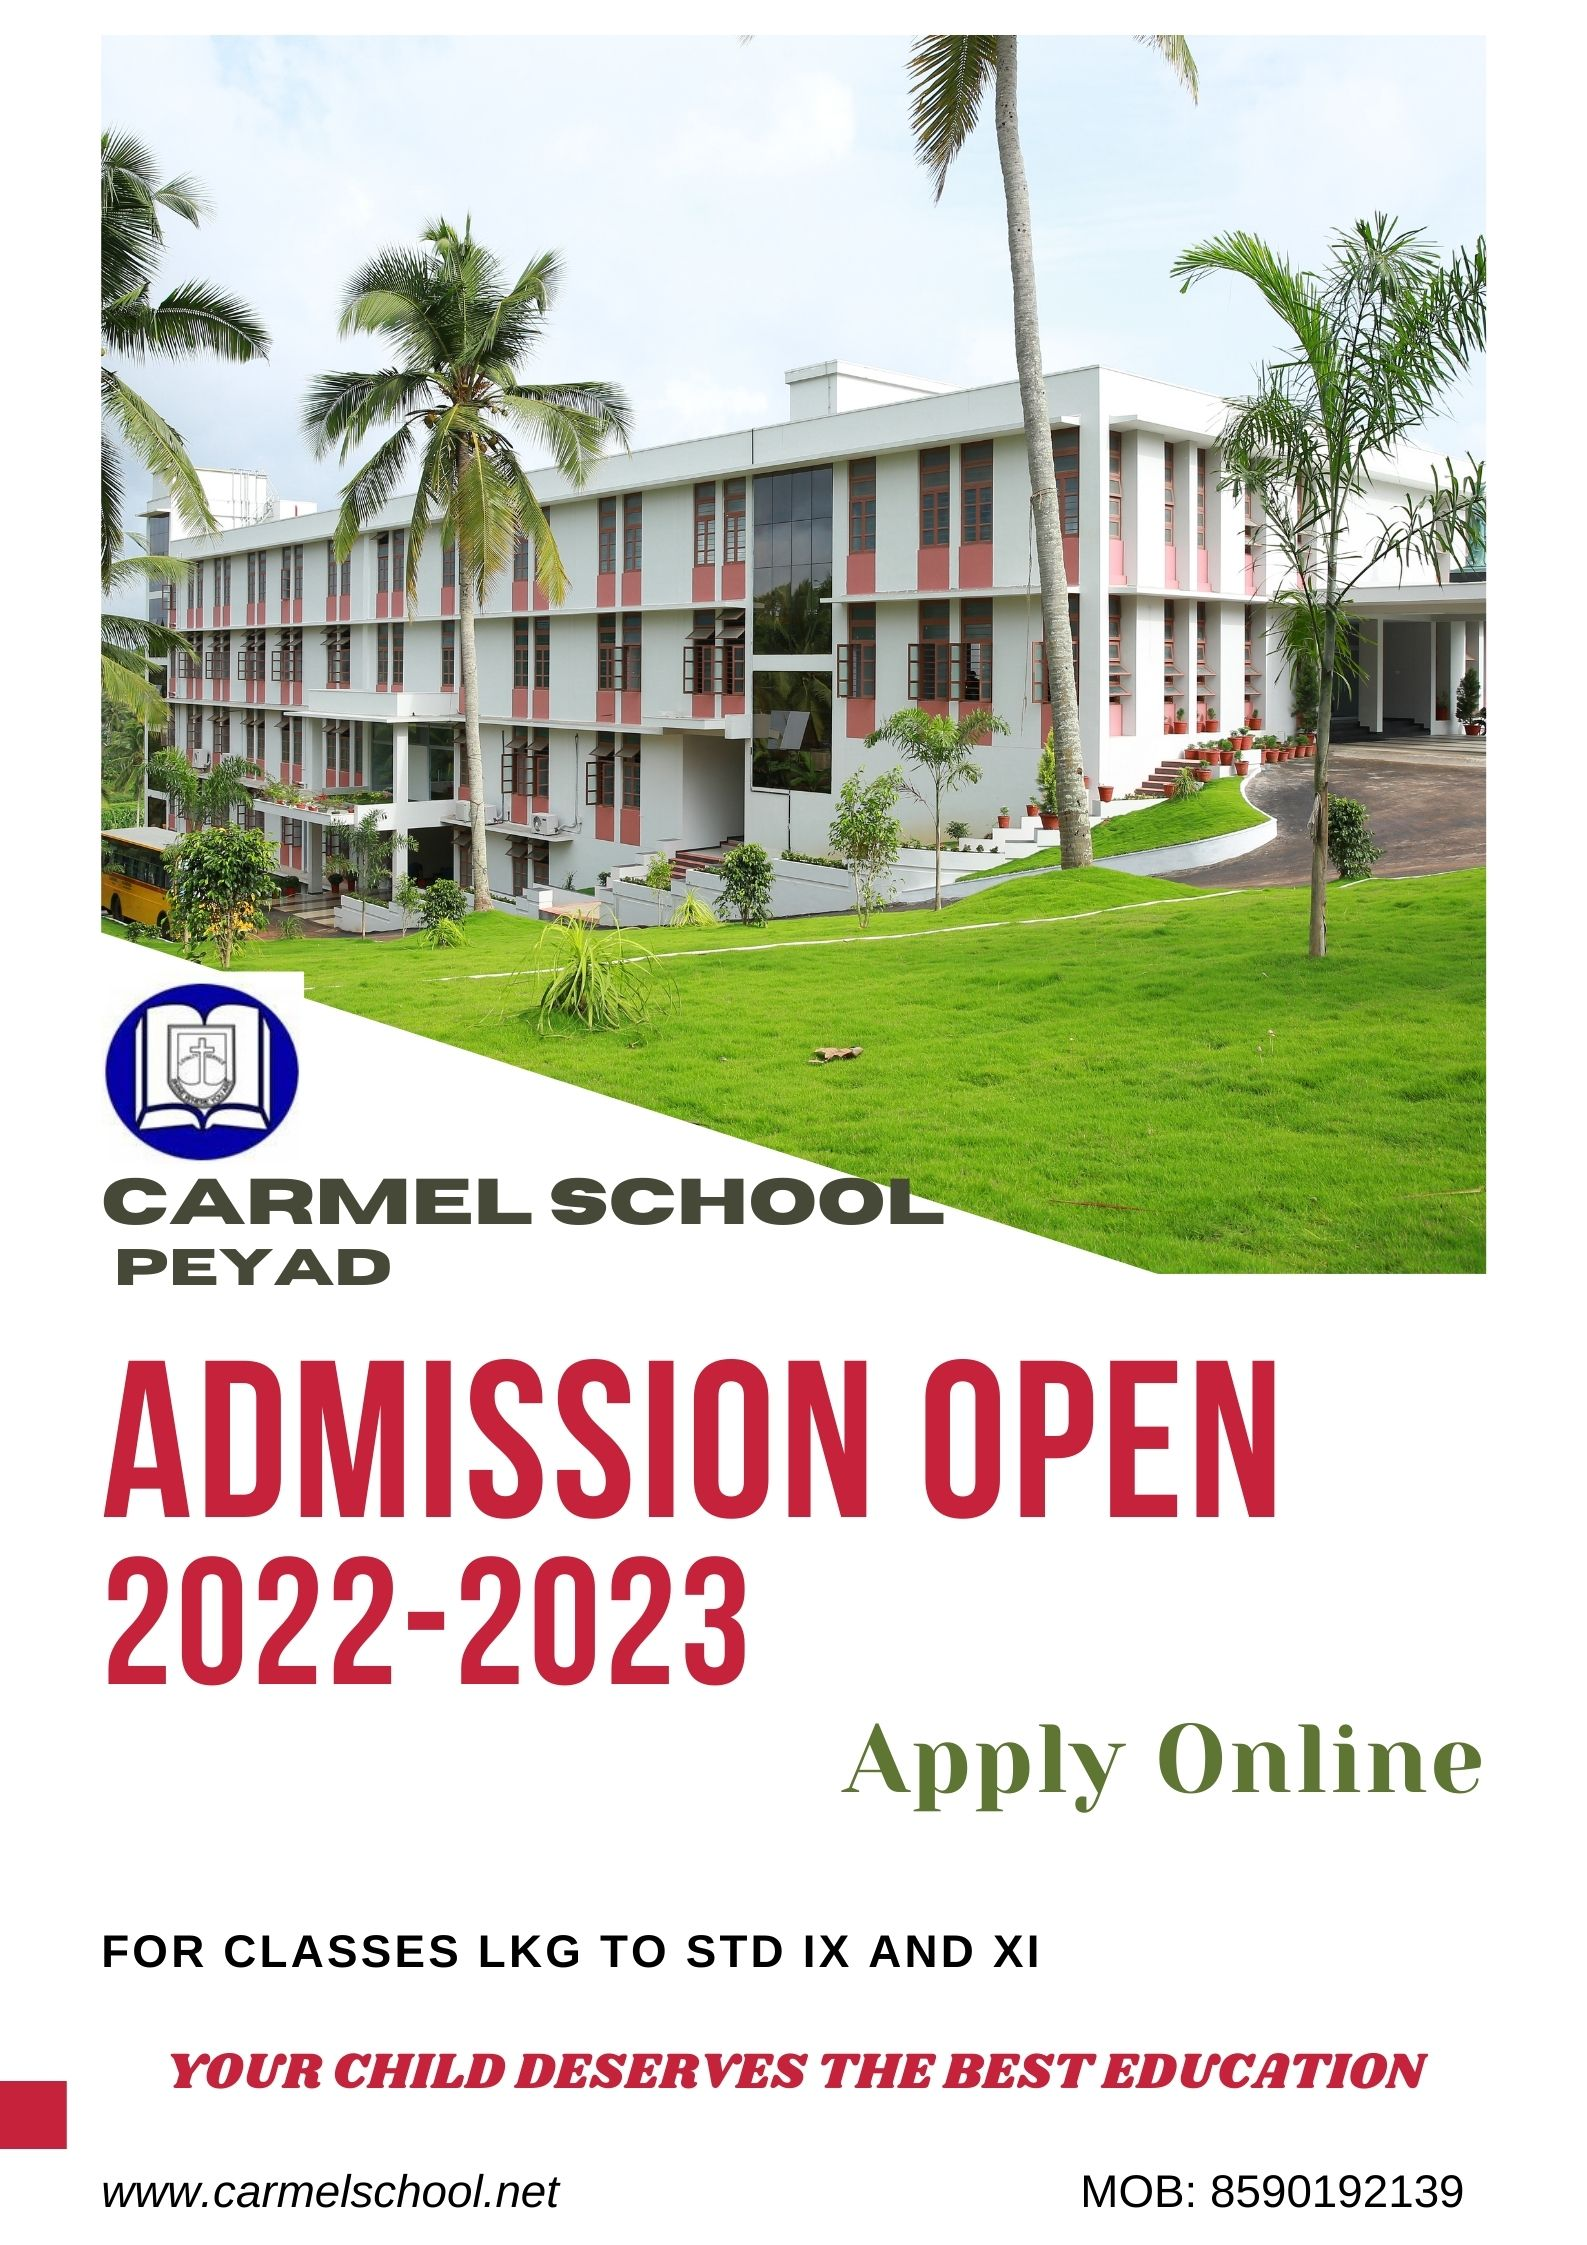 ADMISSION OPEN 2022-'23